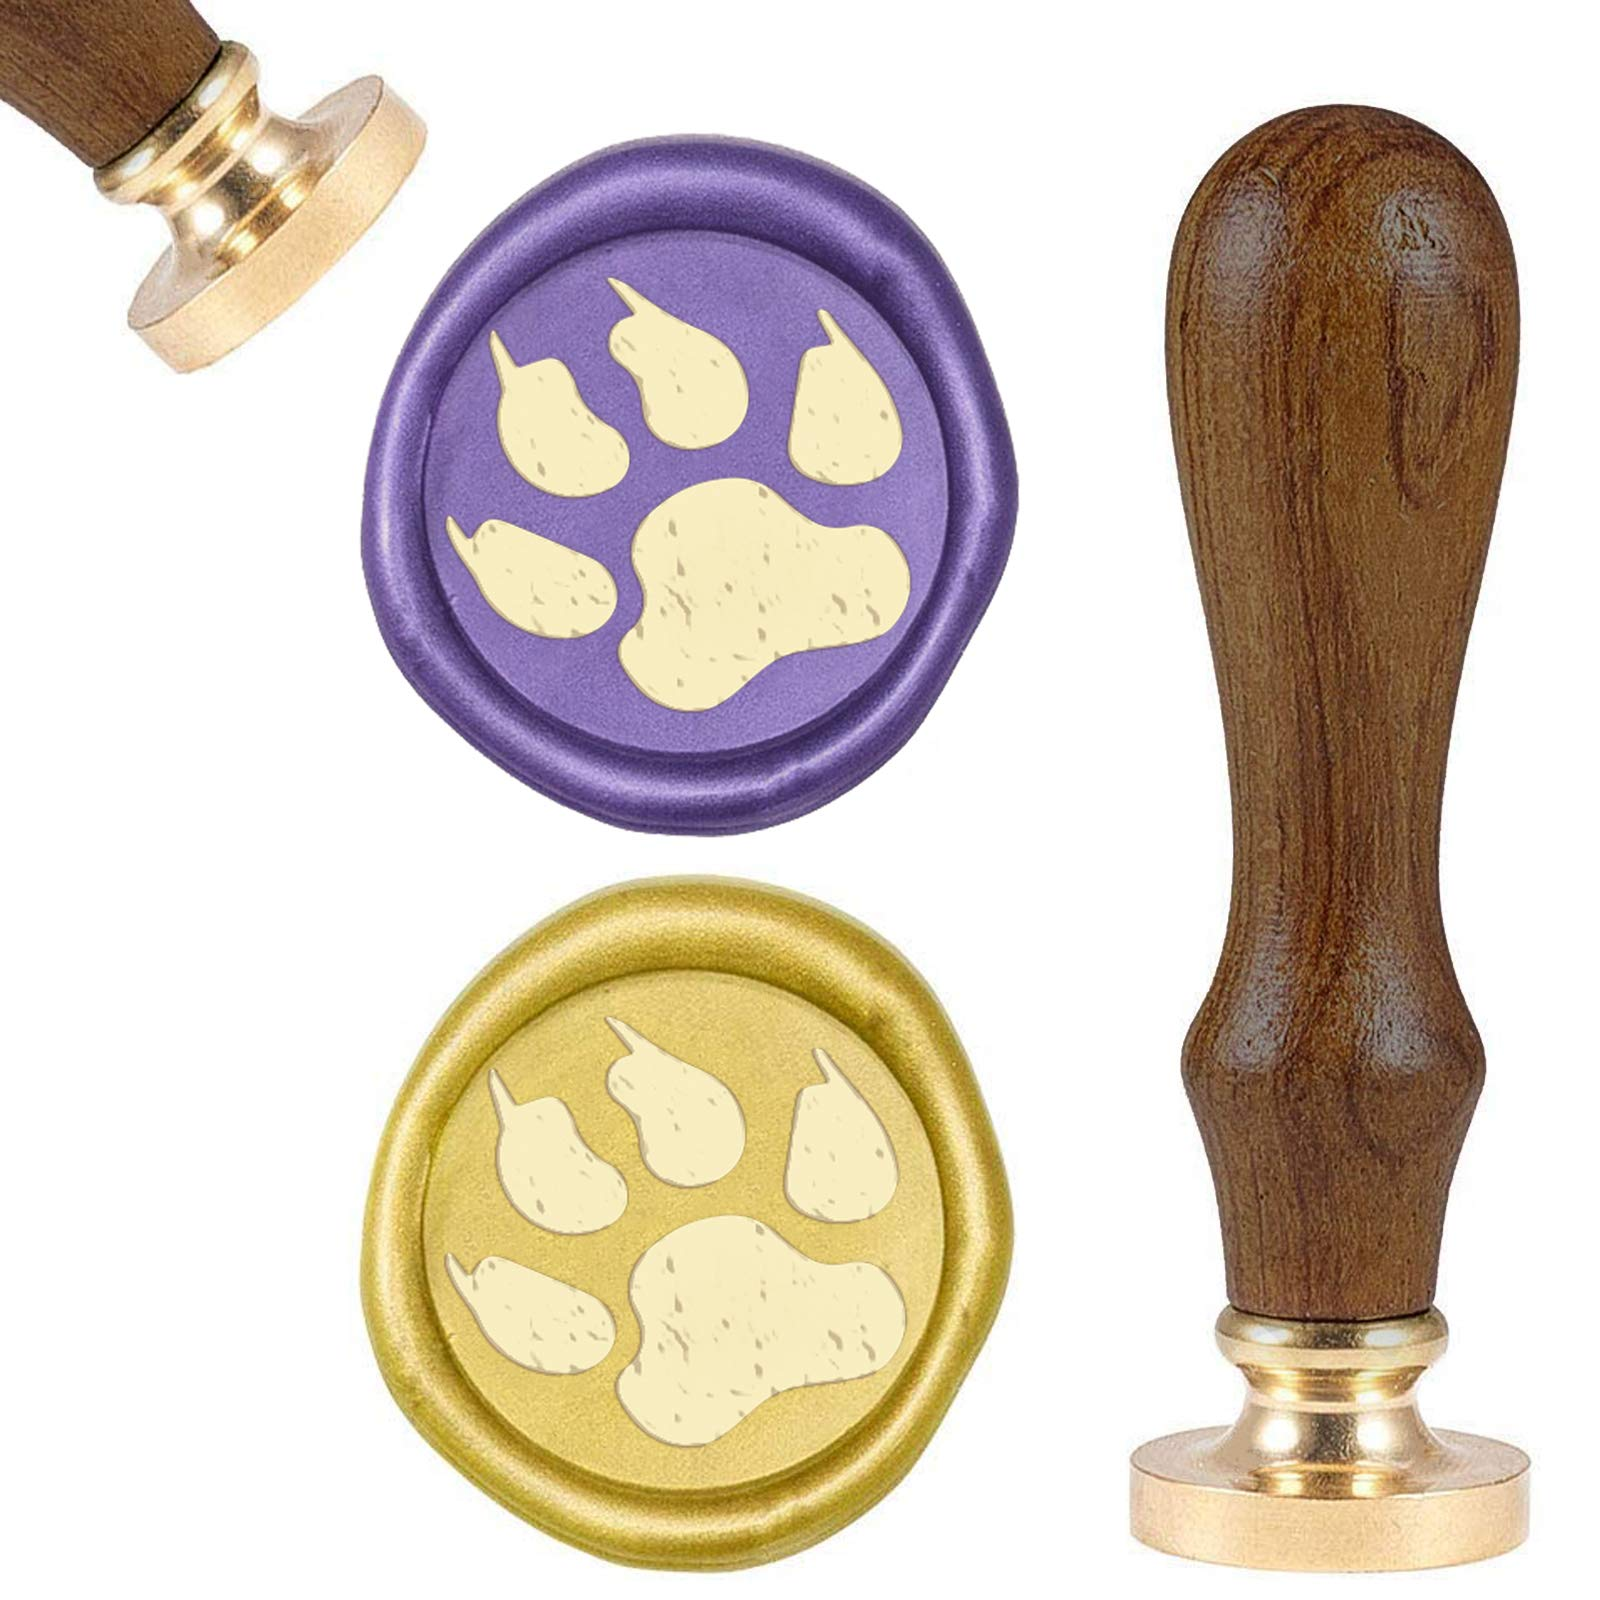 SUPERFINDINGS Animal Footprints Pattern Brass Wax Seal Stamp and Wood Handle Sets Animal Sealing Wax Stamps Retro Wood Stamp Wax Seal for Cards Envelopes, Invitations, Wine Packages